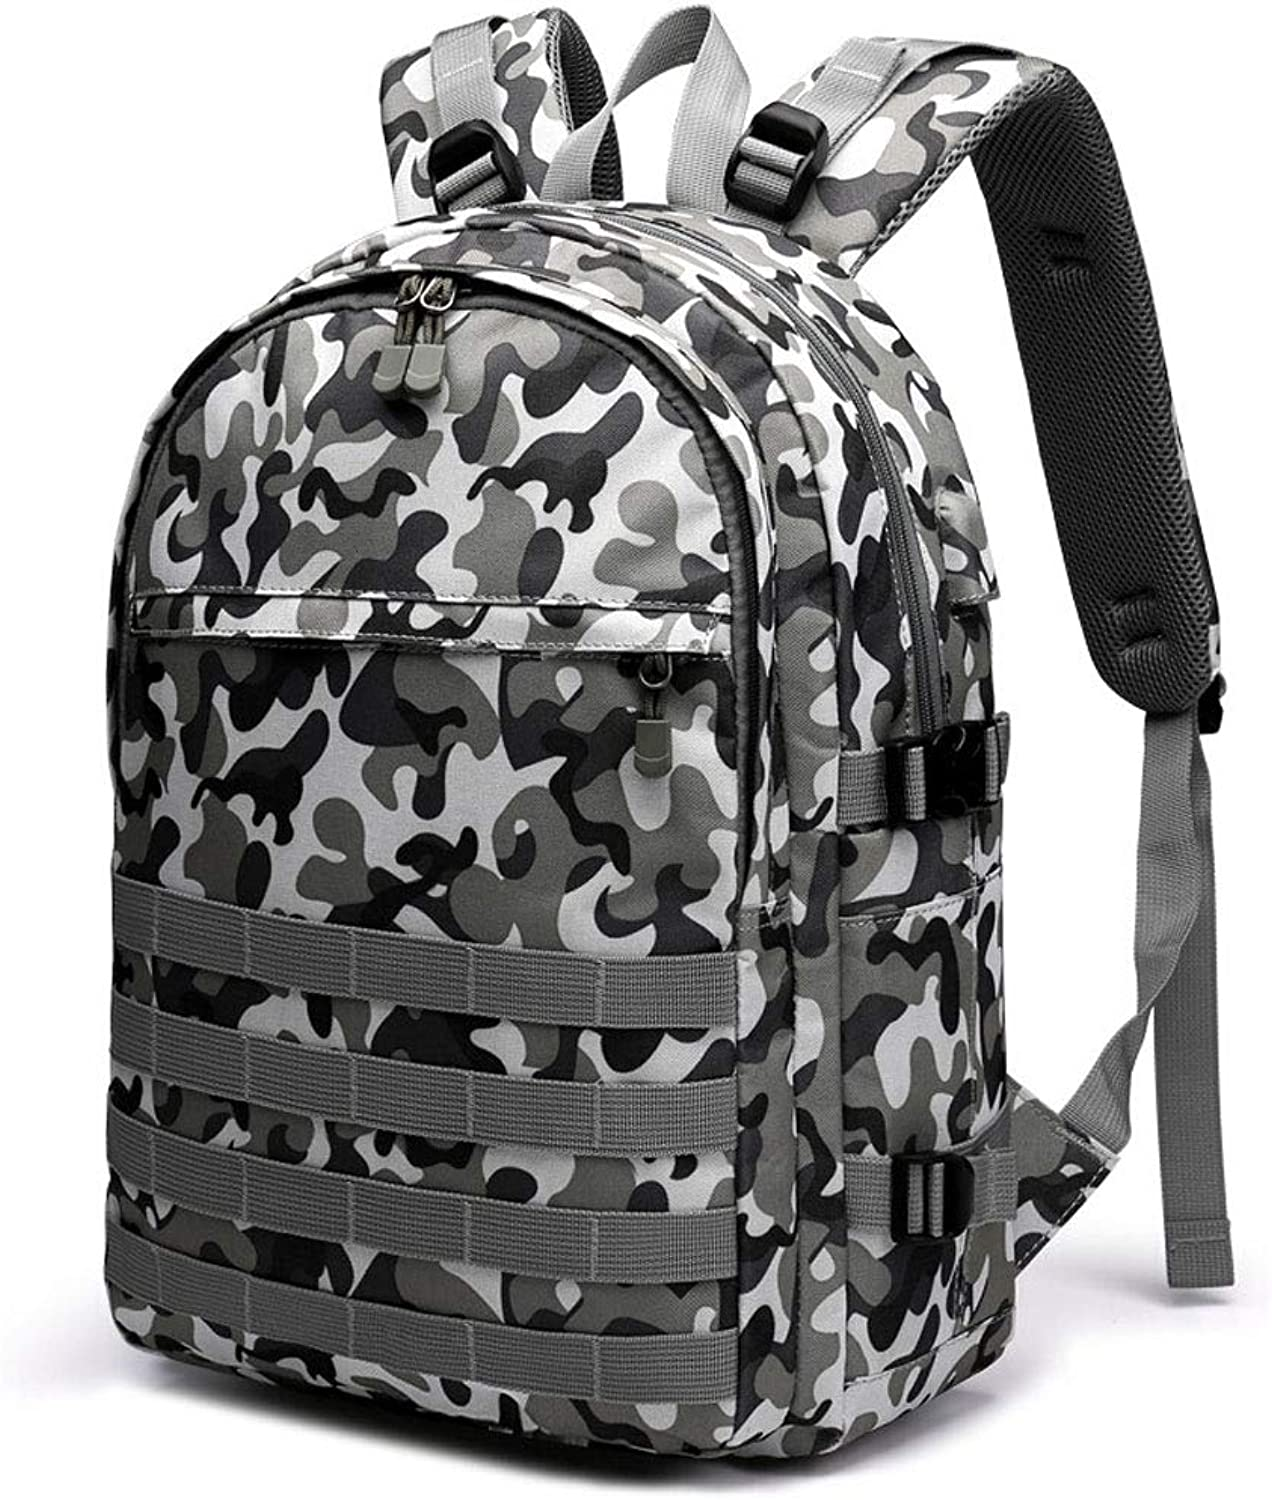 ZZG 20L Lightweight boys and girls school bags large capacity waterproof business casual travel laptop backpack